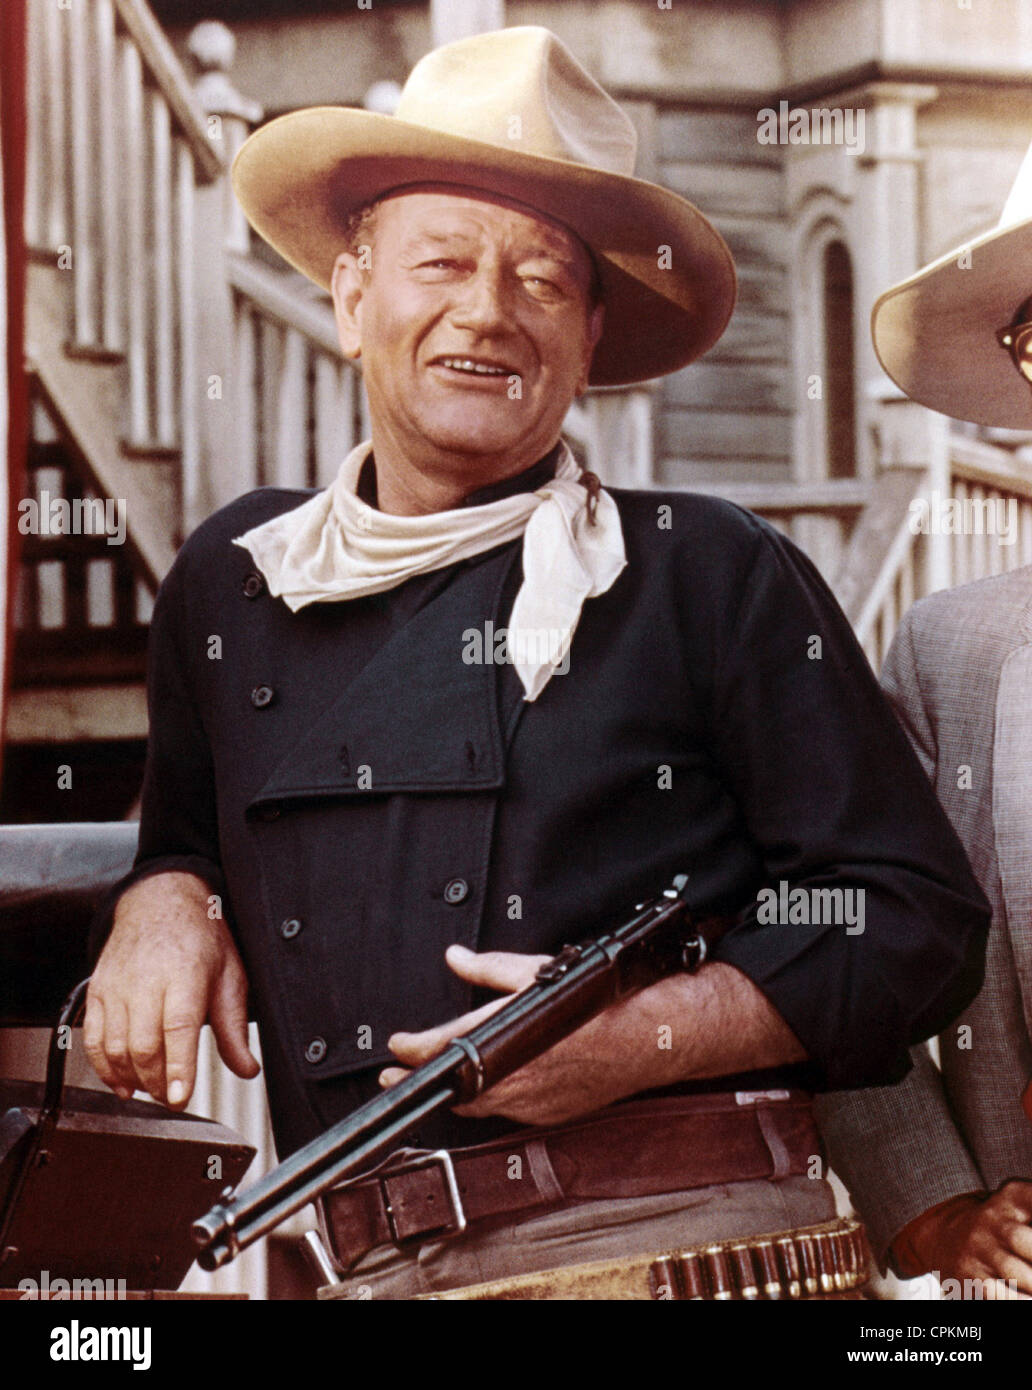 A portrait of John Wayne with shotgun in cowboy western film. - Stock Image